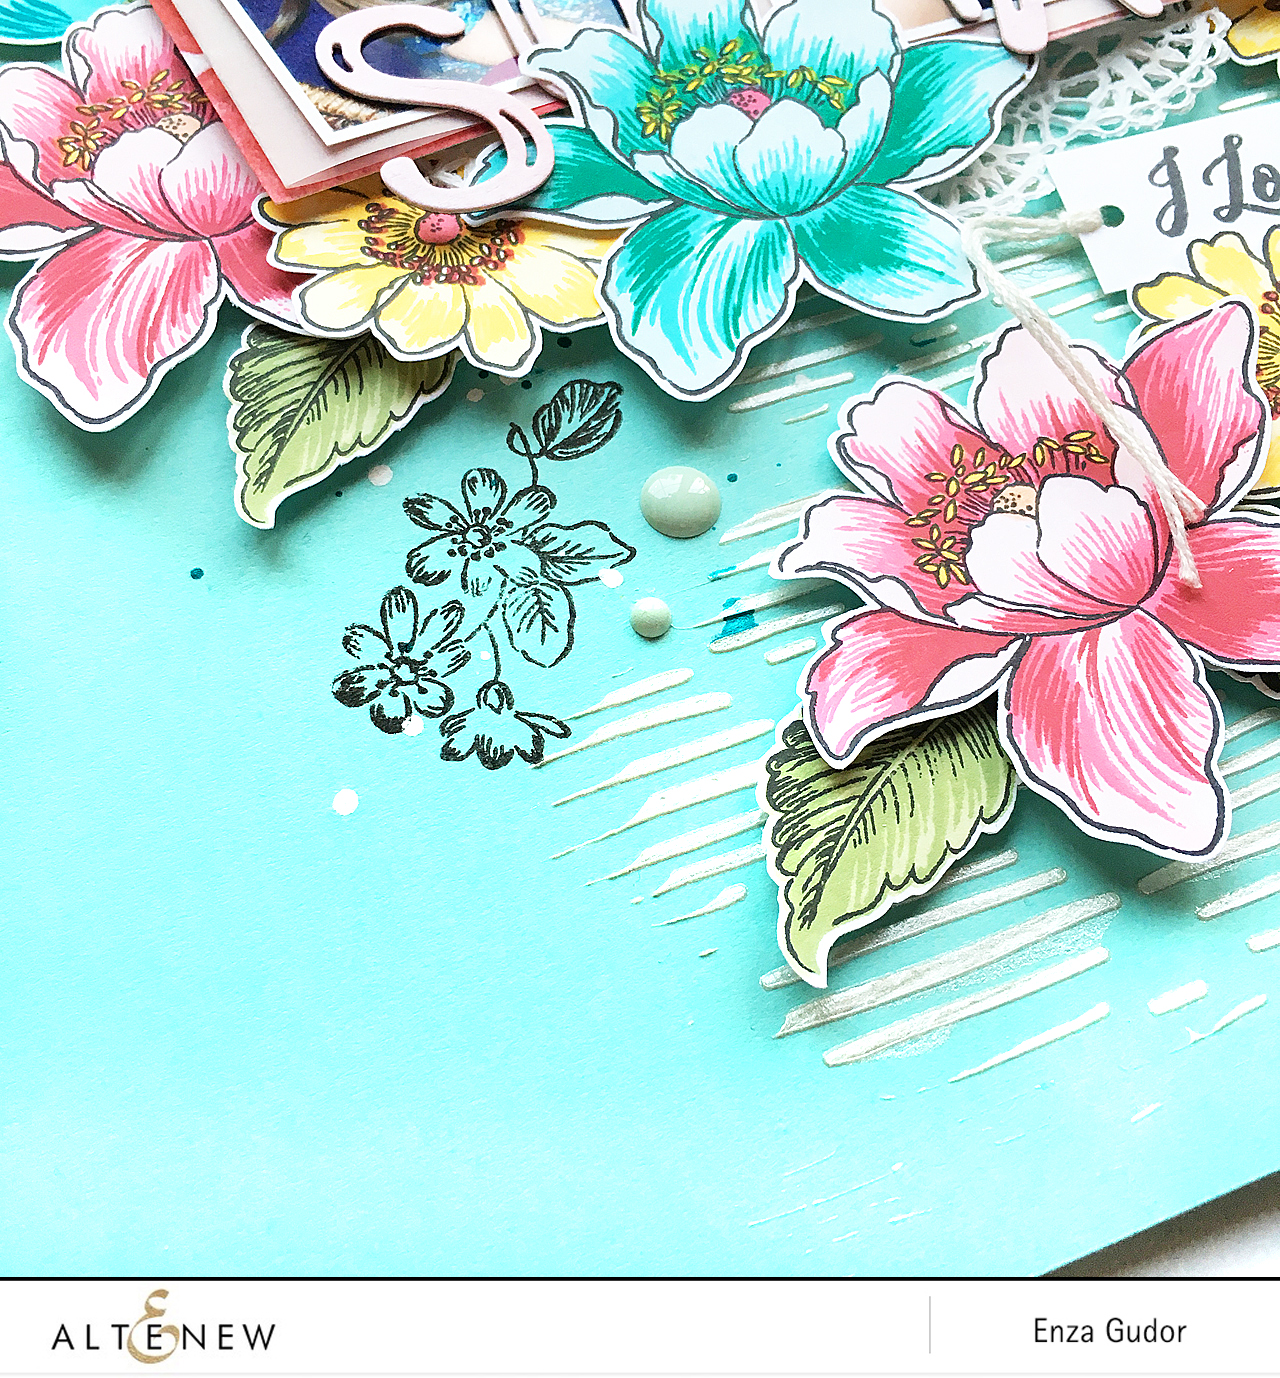 Scrapbook layout by @enzamg for @altenew using Garden Treasure stamp set. #altenew #floral #scrapbooking #stamping